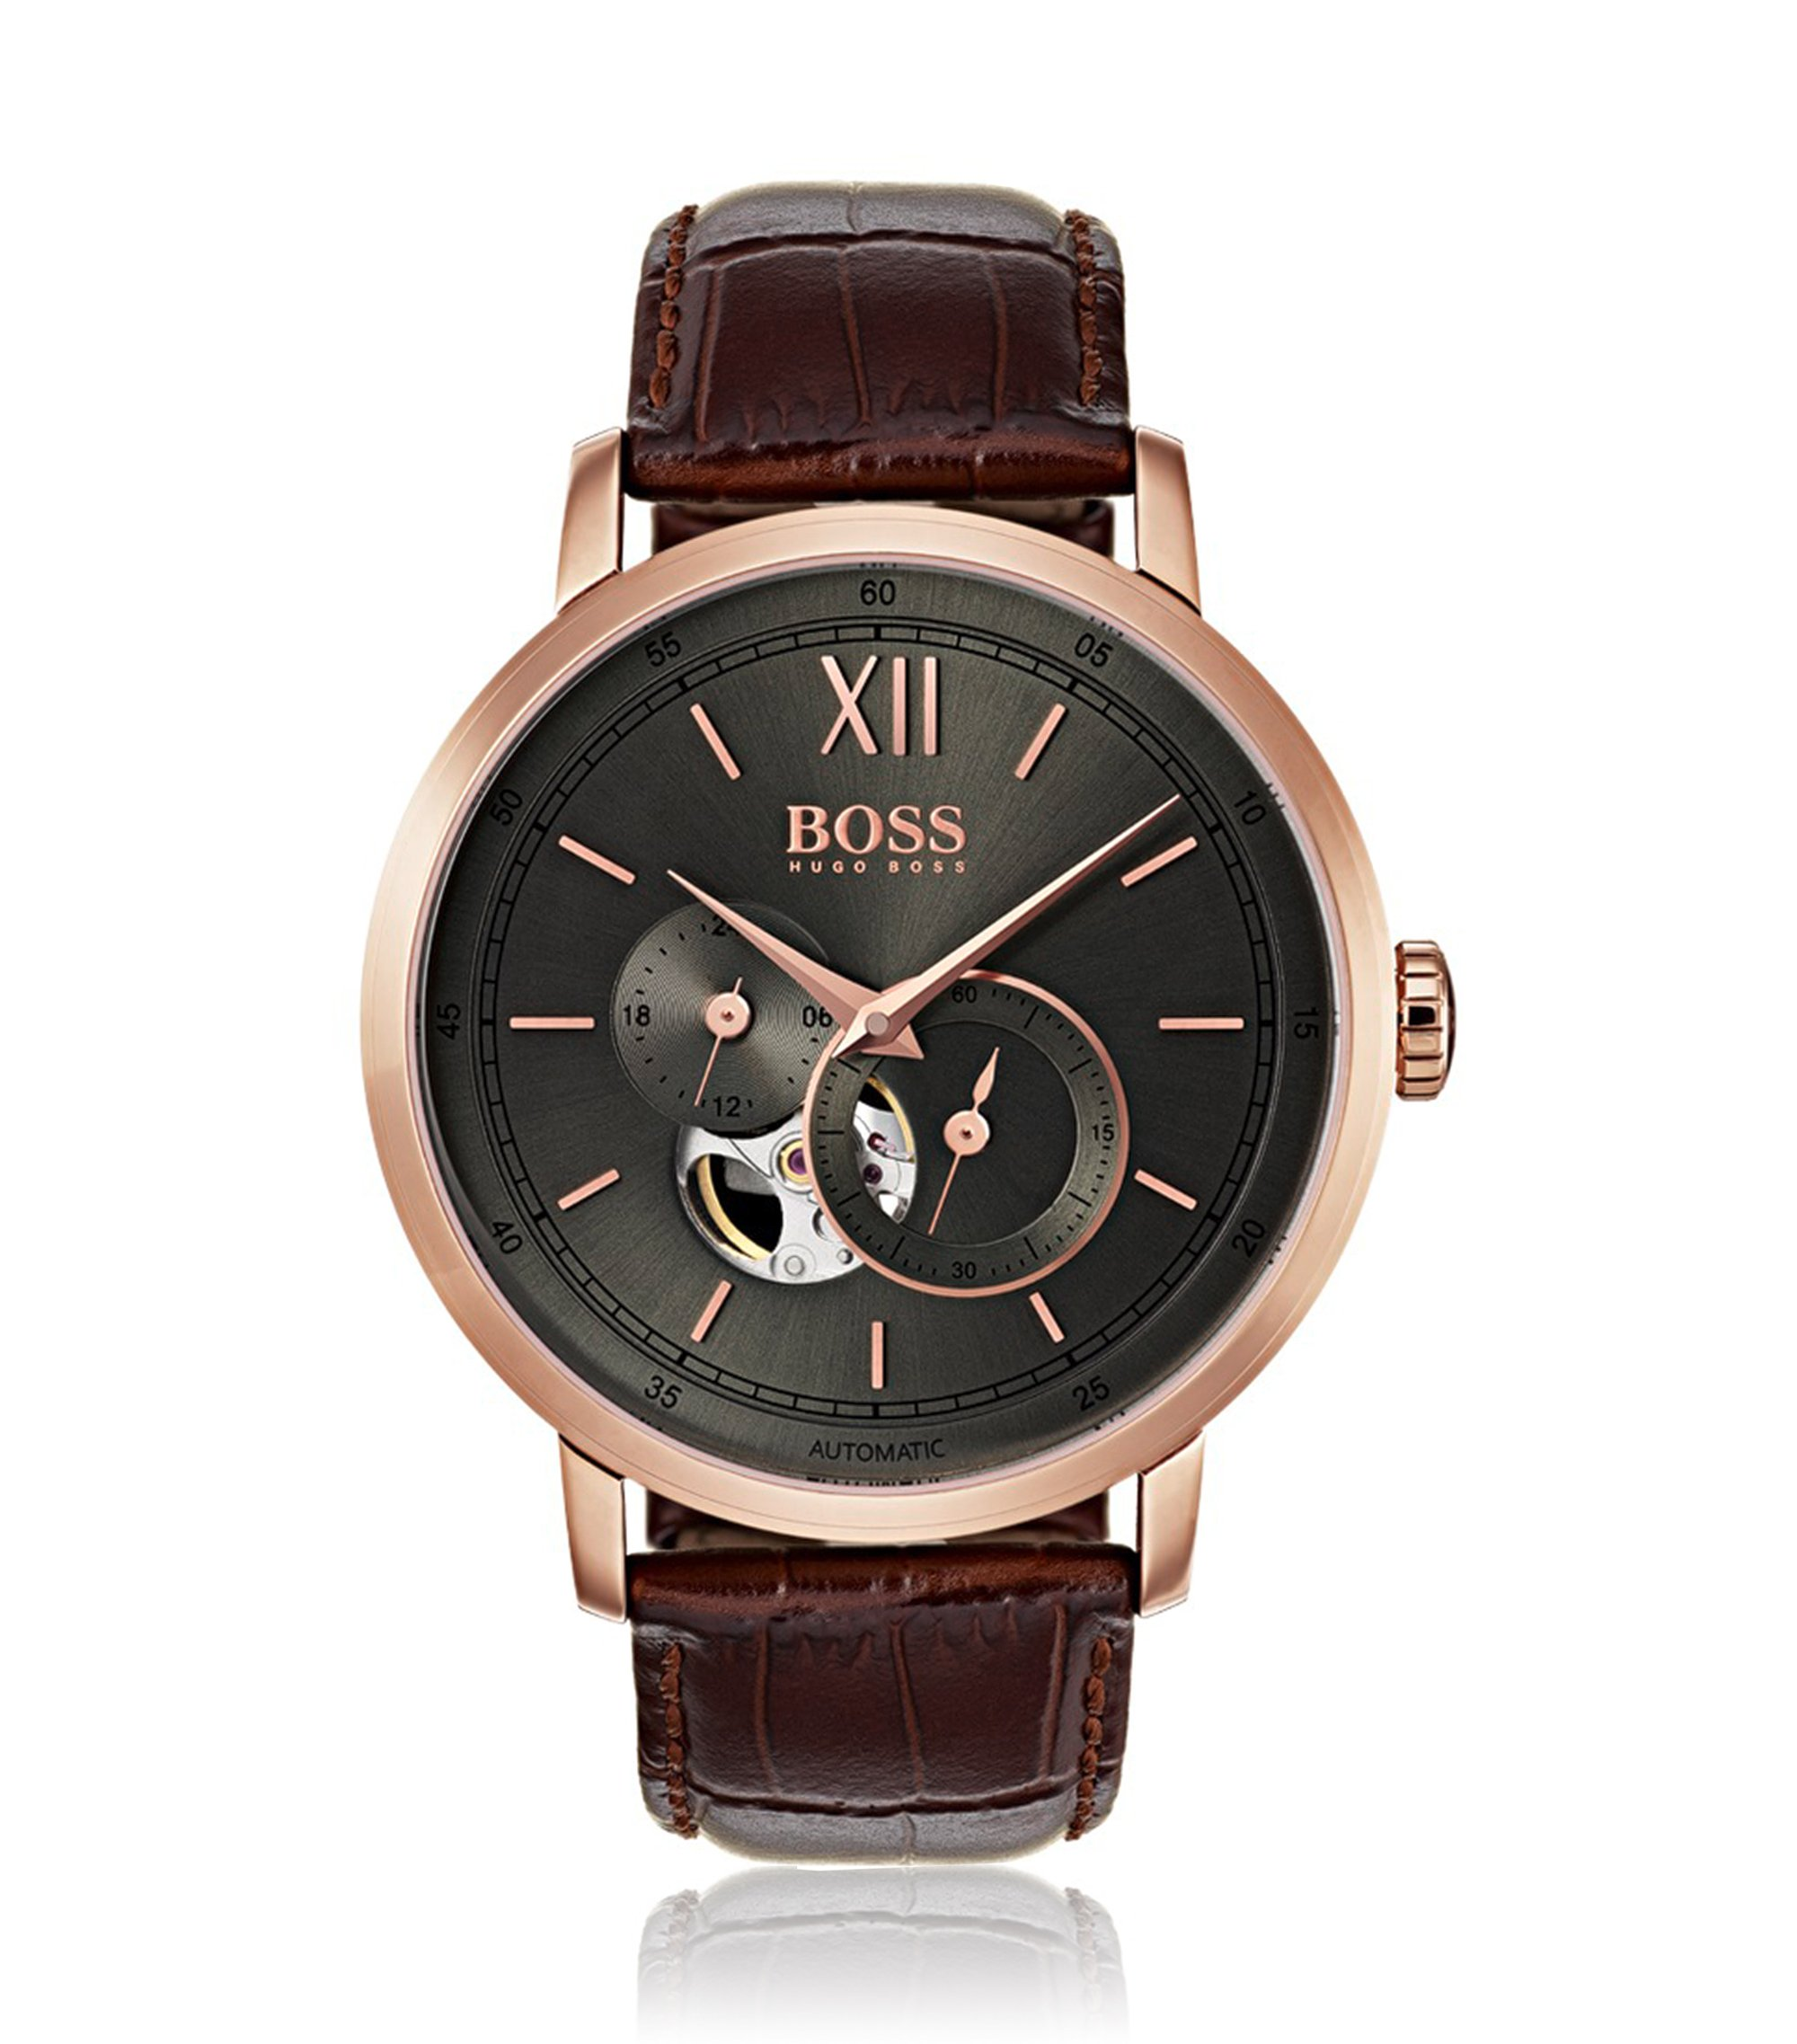 Rose-gold-plated watch with visible mechanics, Dark Brown